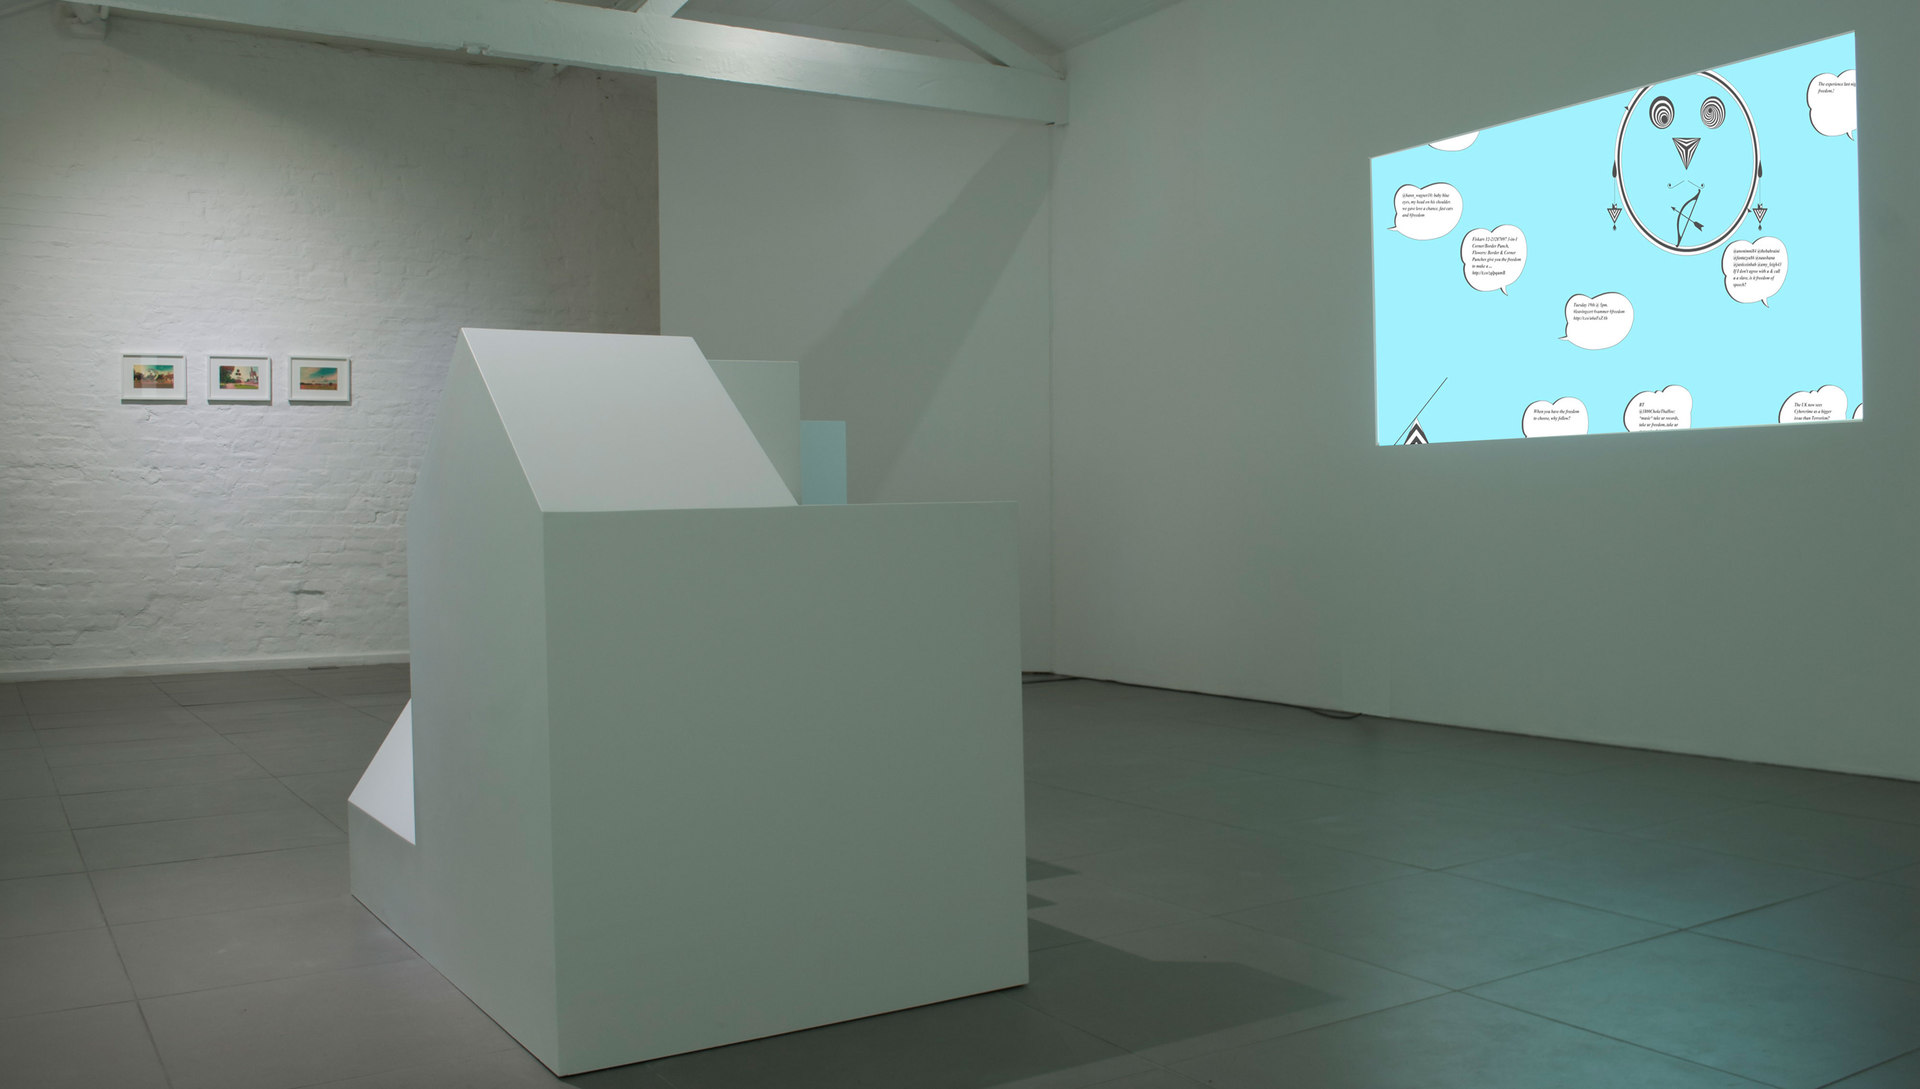 Angelo Plessas, Twilight Of The Idols, 'Re-TwitteringMachine.com, website and Twitter api, unique', 2012, http://re-twitteringmachine.com/, Mousepad Monument, mdf, digital projection, Cell Project Space